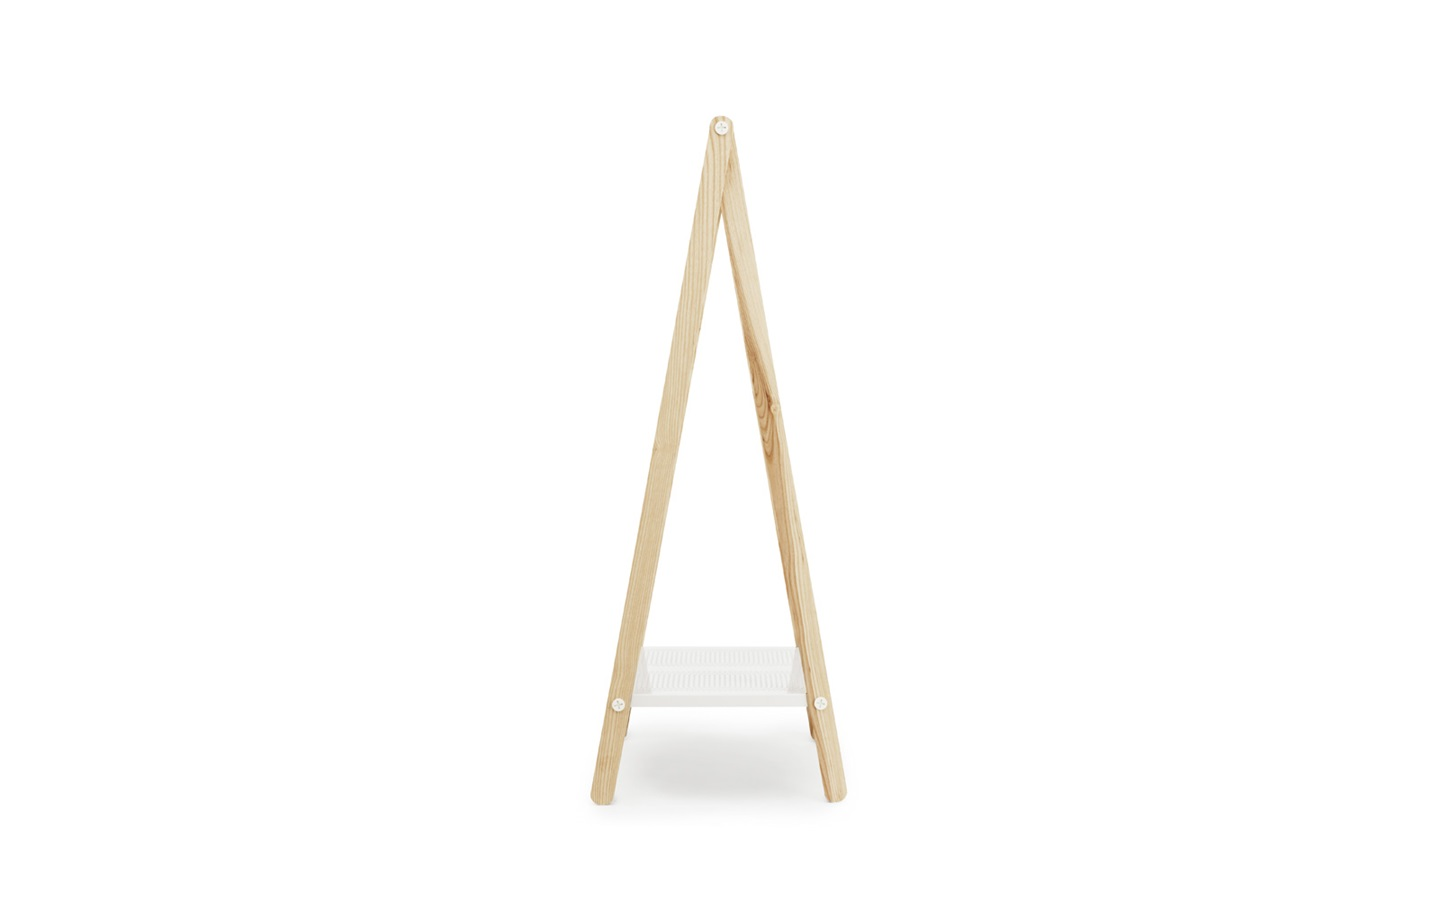 Toj clothes rack stylish wardrobe furniture in white steel and ash